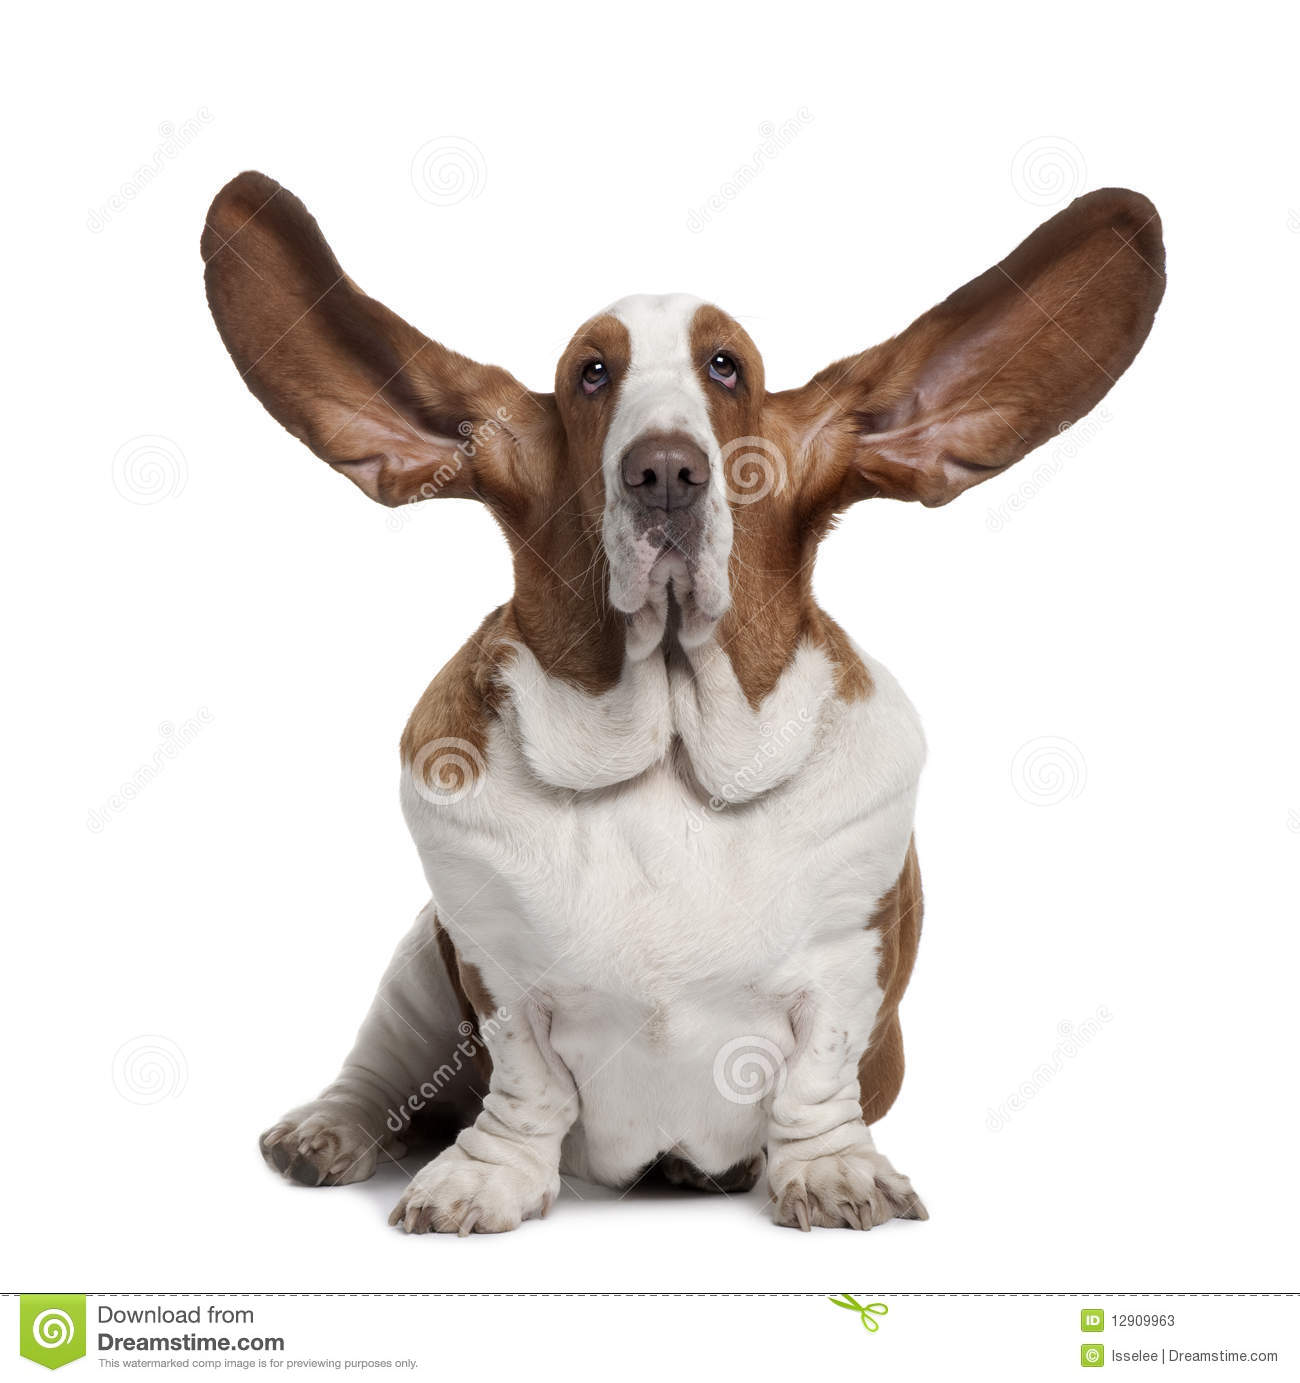 Front View Of Basset Hound With Ears Up, Sitting Stock Image - Image ...